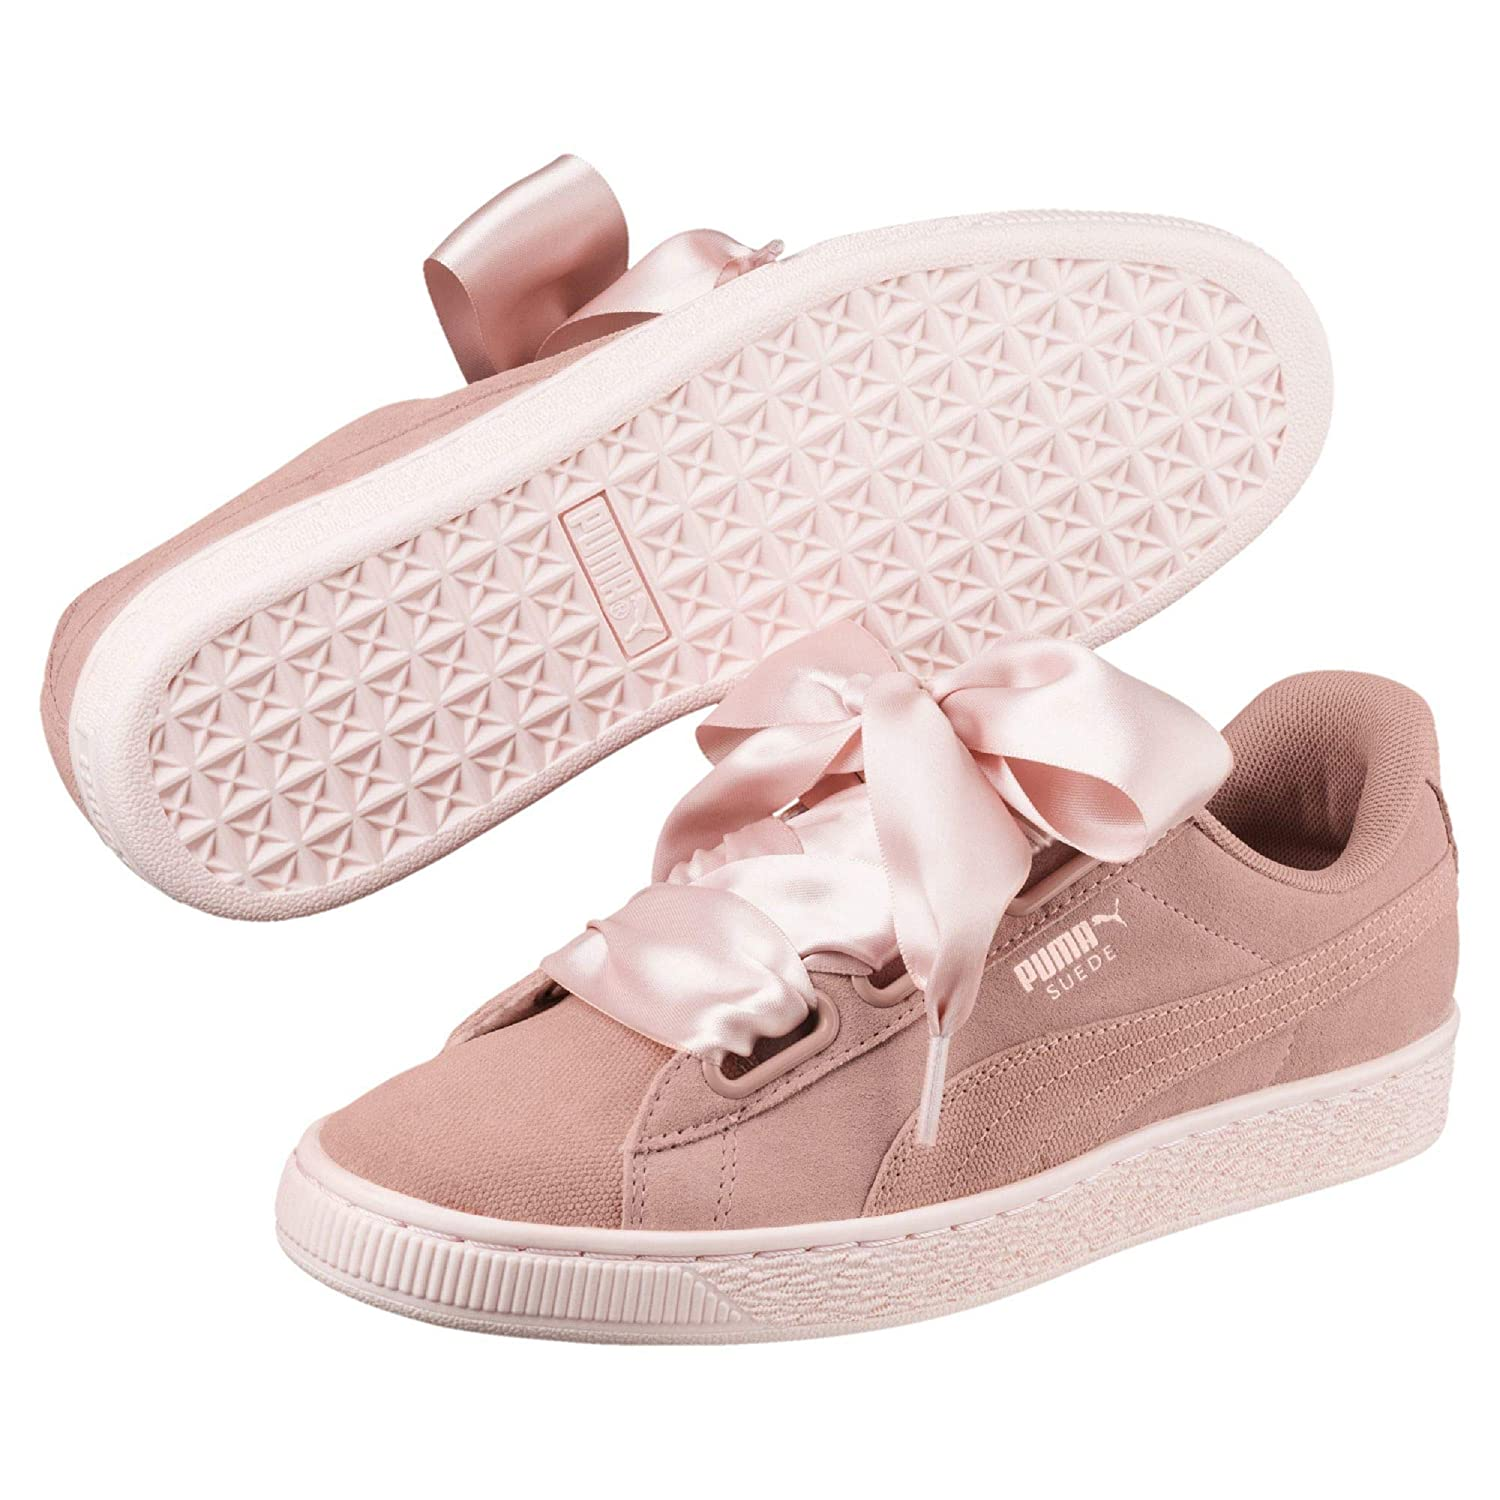 Suede Pebble Trainers Puma Women's Wn's Heart BorWedxC